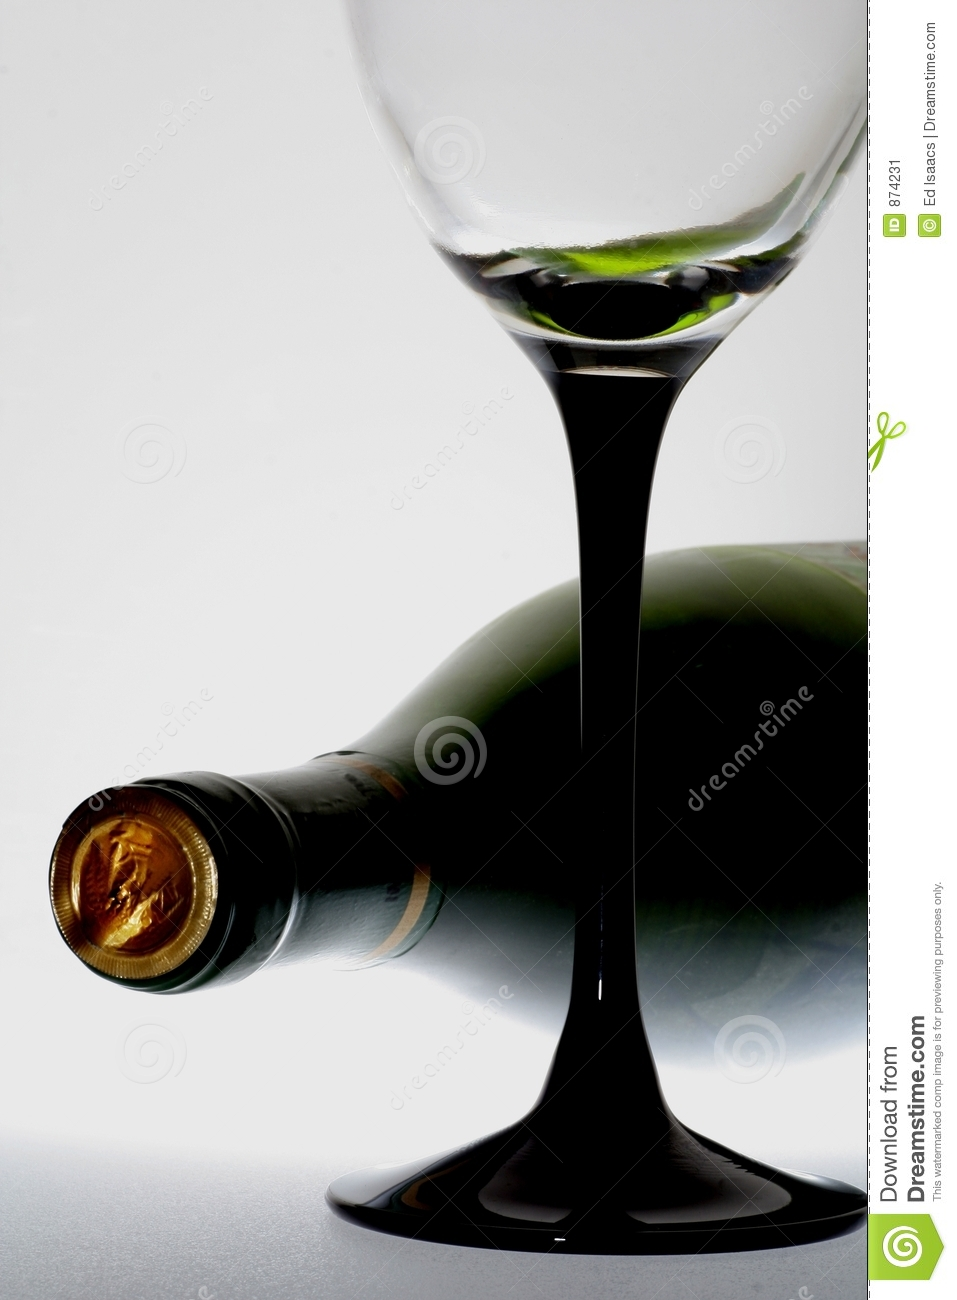 Wine bottle and glass stock image image 874231 for Wine bottle glass